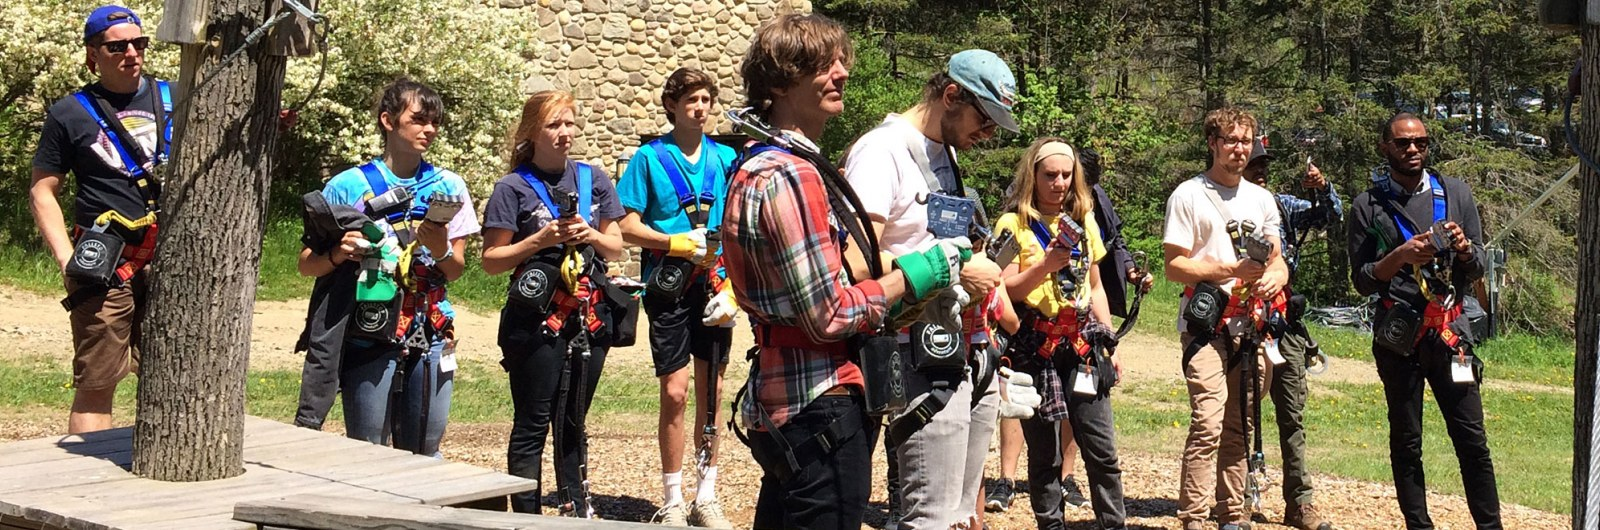 Group getting instructions at Holiday Valley's zipline adventure park in New York